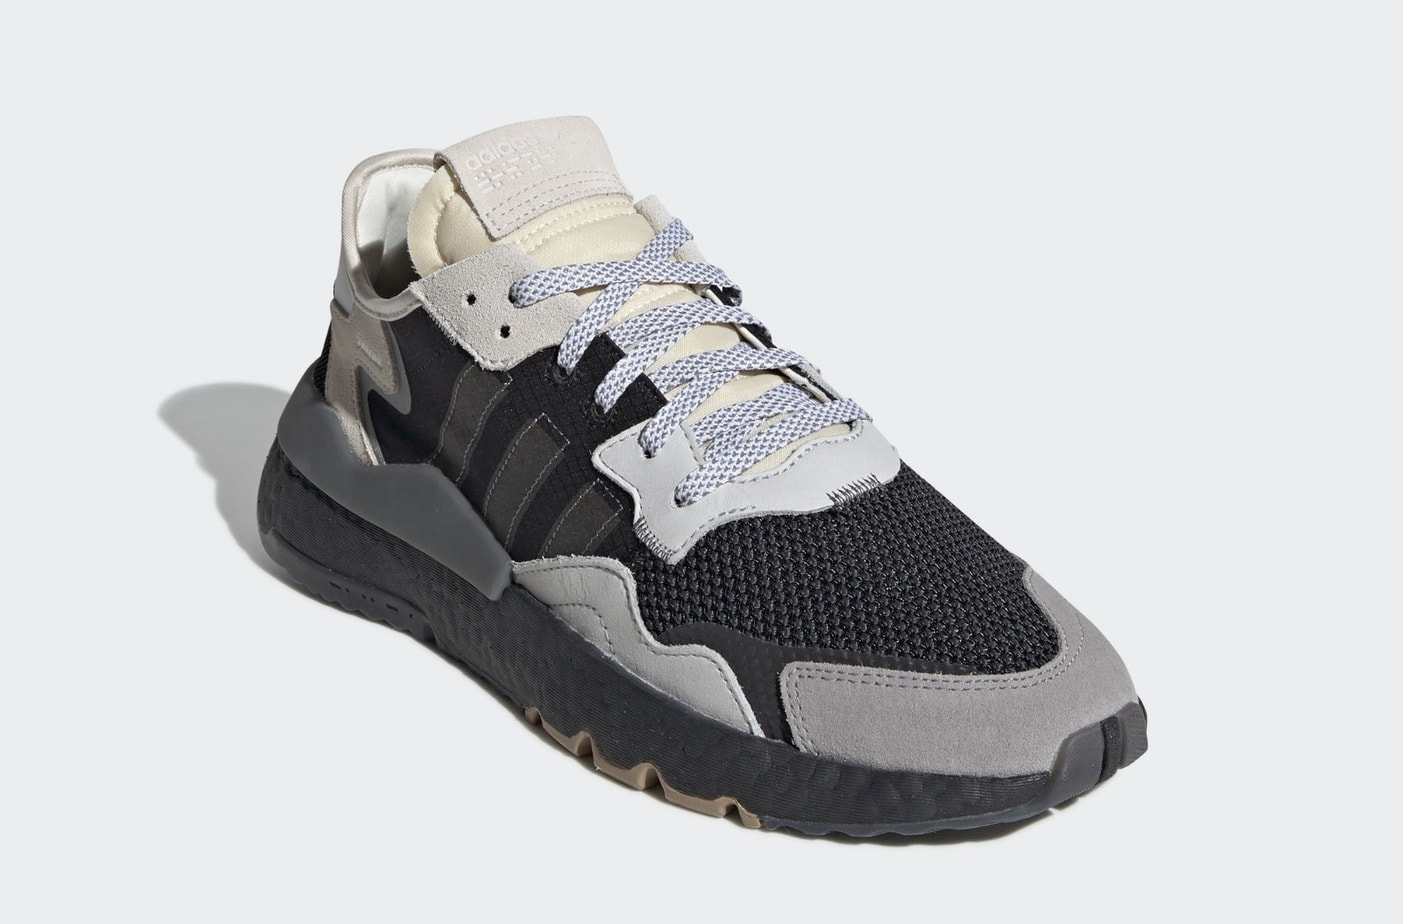 Adidas Nite Jogger 2019 adidas Nite Jogger Release Date: February, 2019. Price: $140. Color: Core  Black/Carbon/FTWR White Style Code: BD7933